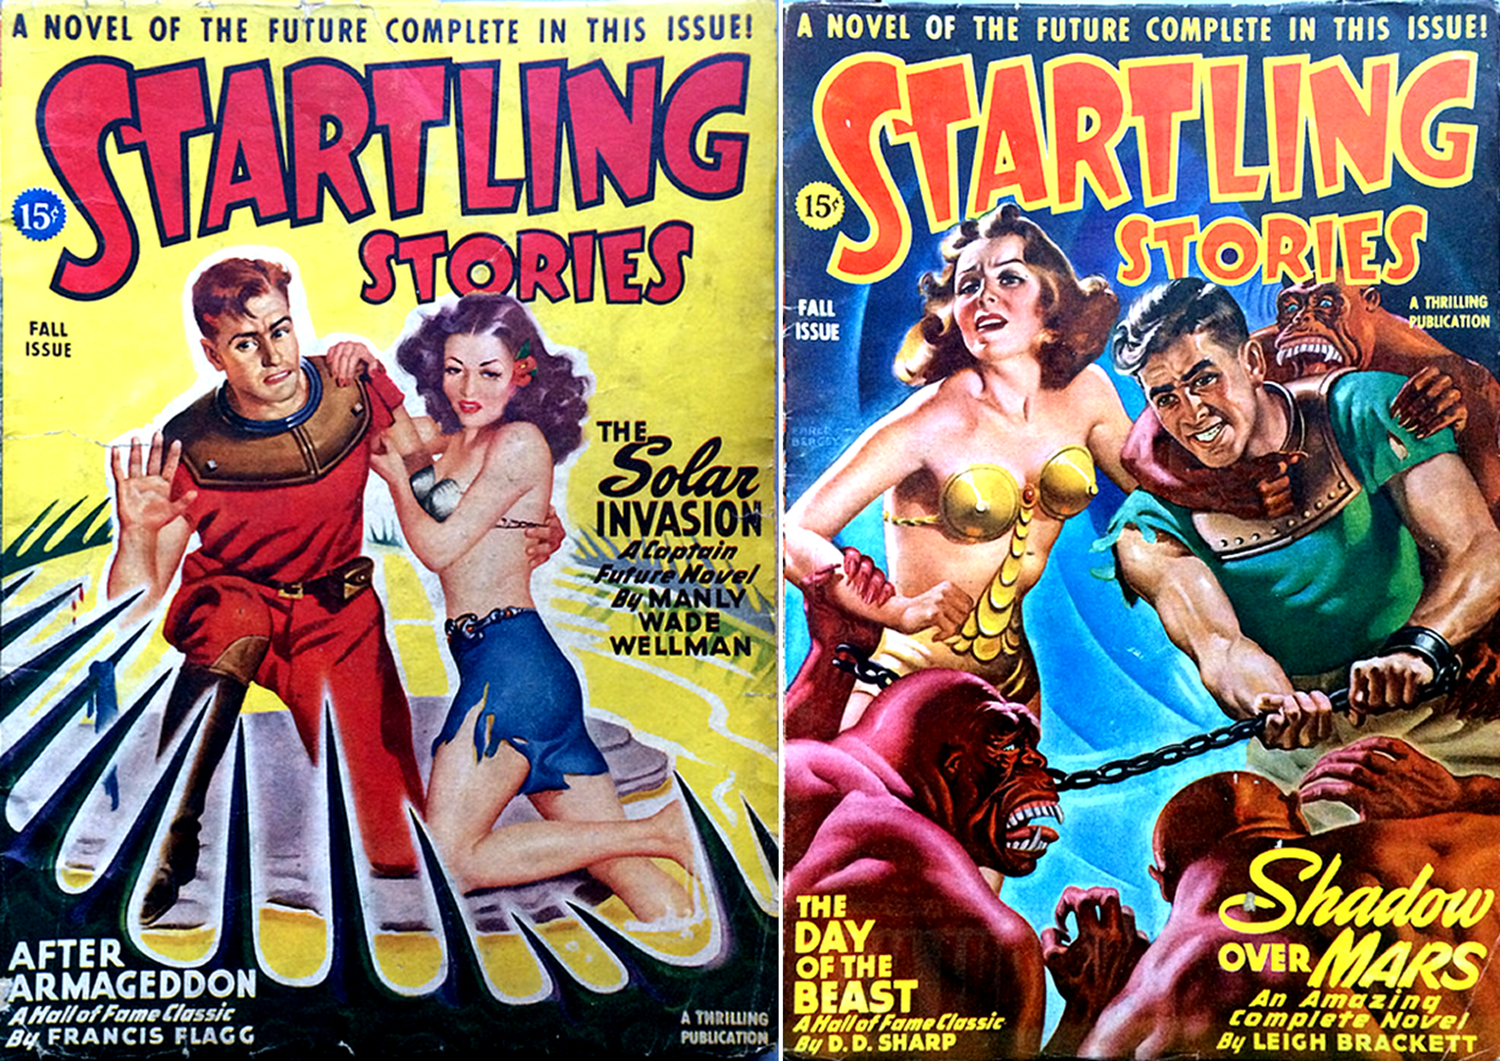 startling stories pulp fiction covers